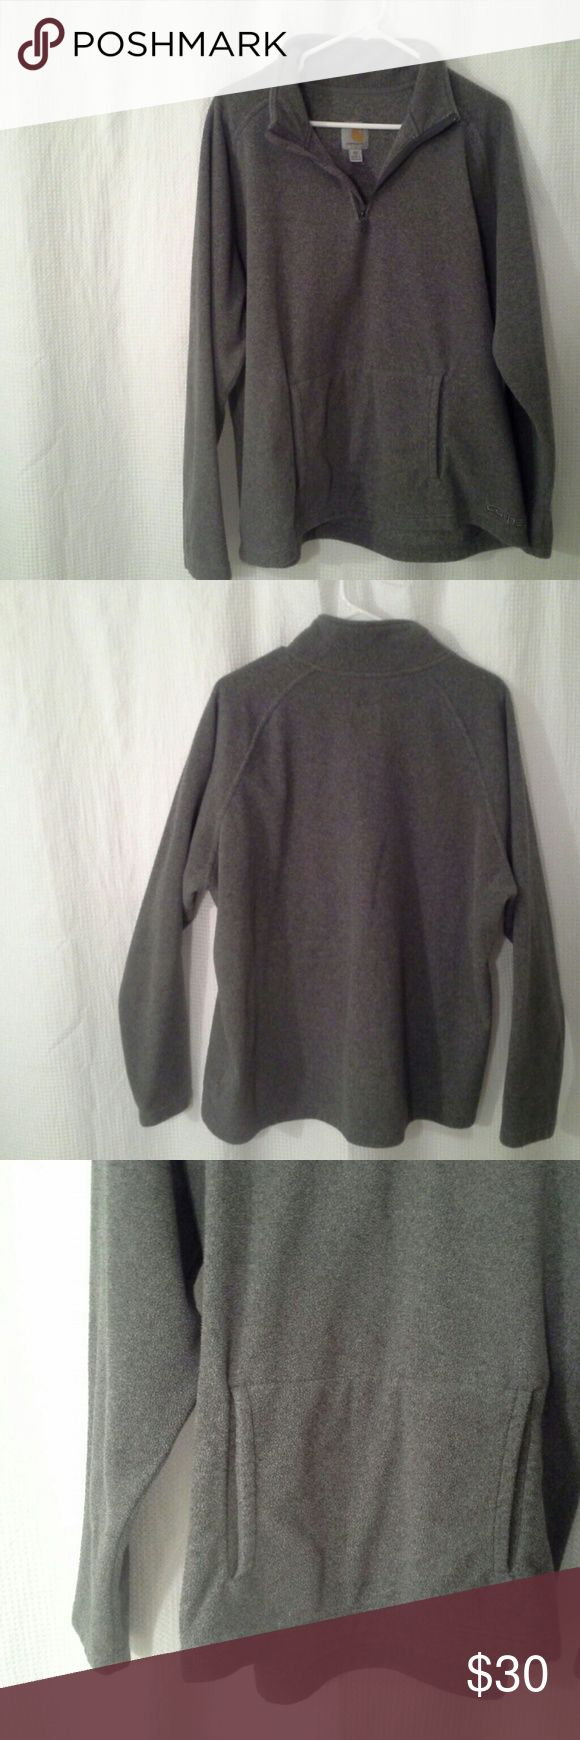 Super Warm Carhartt Pullover Beautiful gray sweatshirt with front pouch pocket. Nice and cozy.  I have worn this both by itself or over another shirt/turtleneck and I have never overheated in it.  In great shape.  Just doesn't fit me anymore.  100% Polyester. Carhartt Tops Sweatshirts & Hoodies